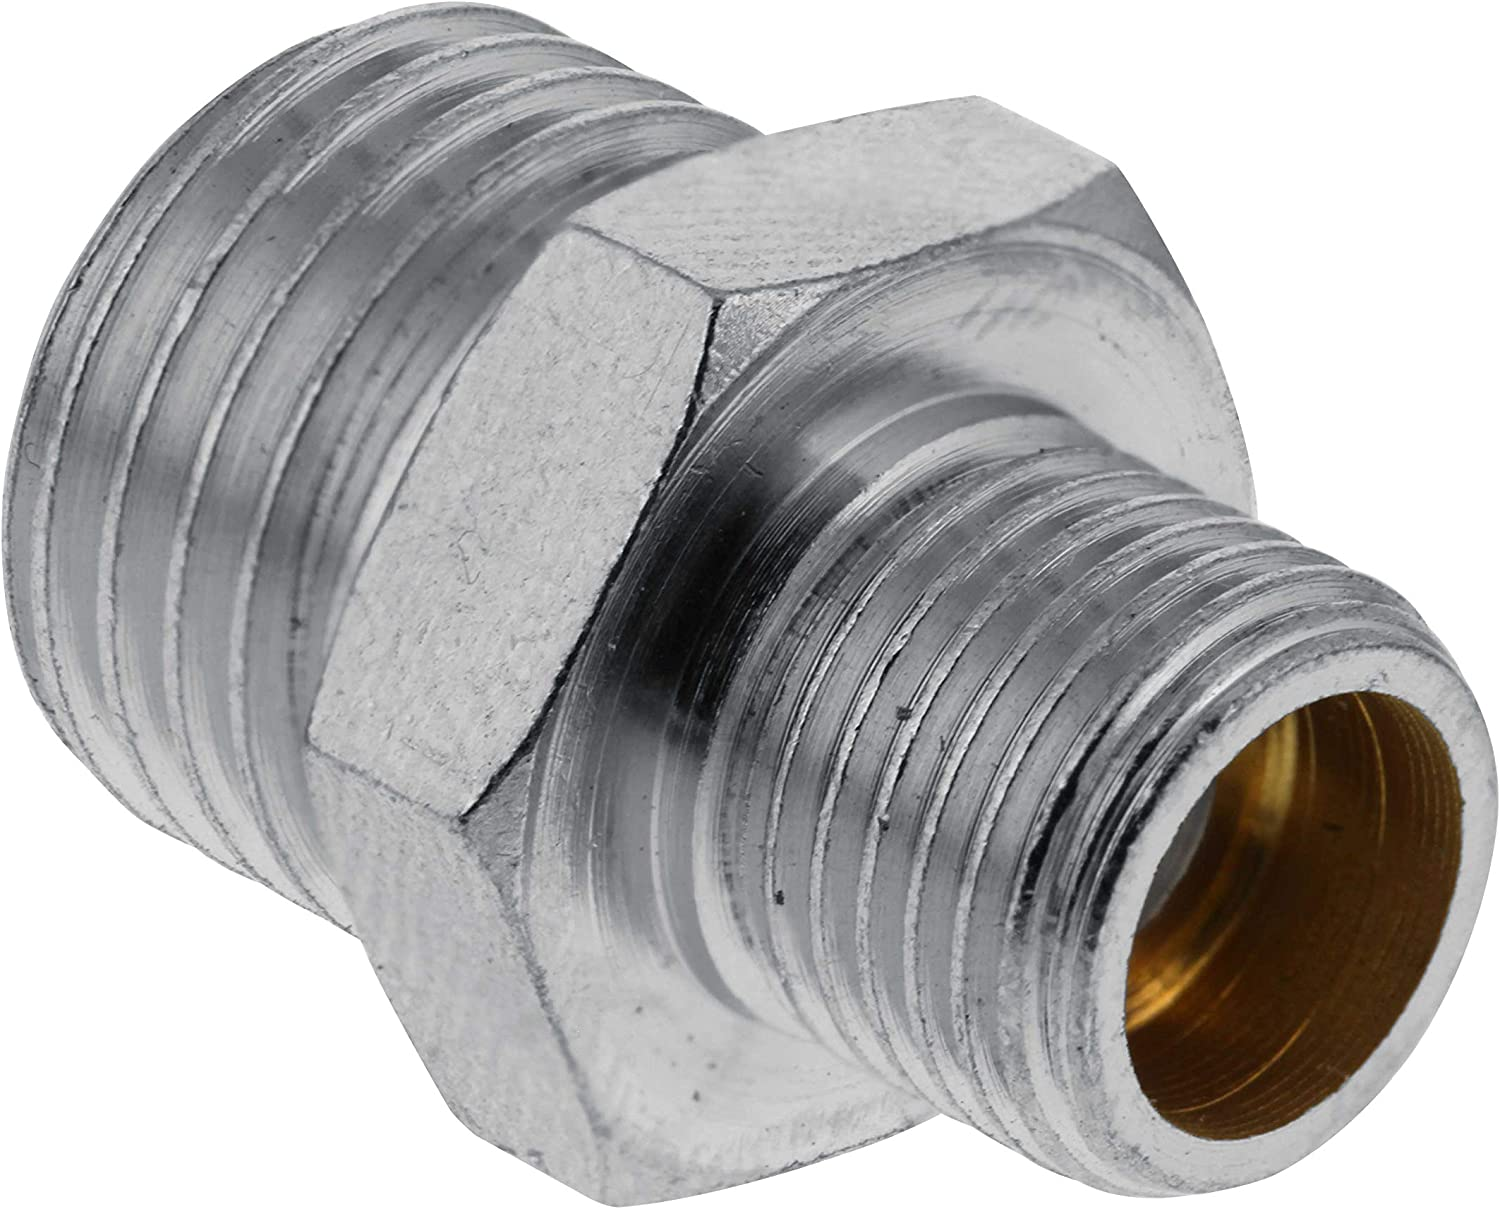 Airbrush Air Hose Adaptor Fitting 1//4/'/' BSP Female to 1//8/'/' BSP Male Connector